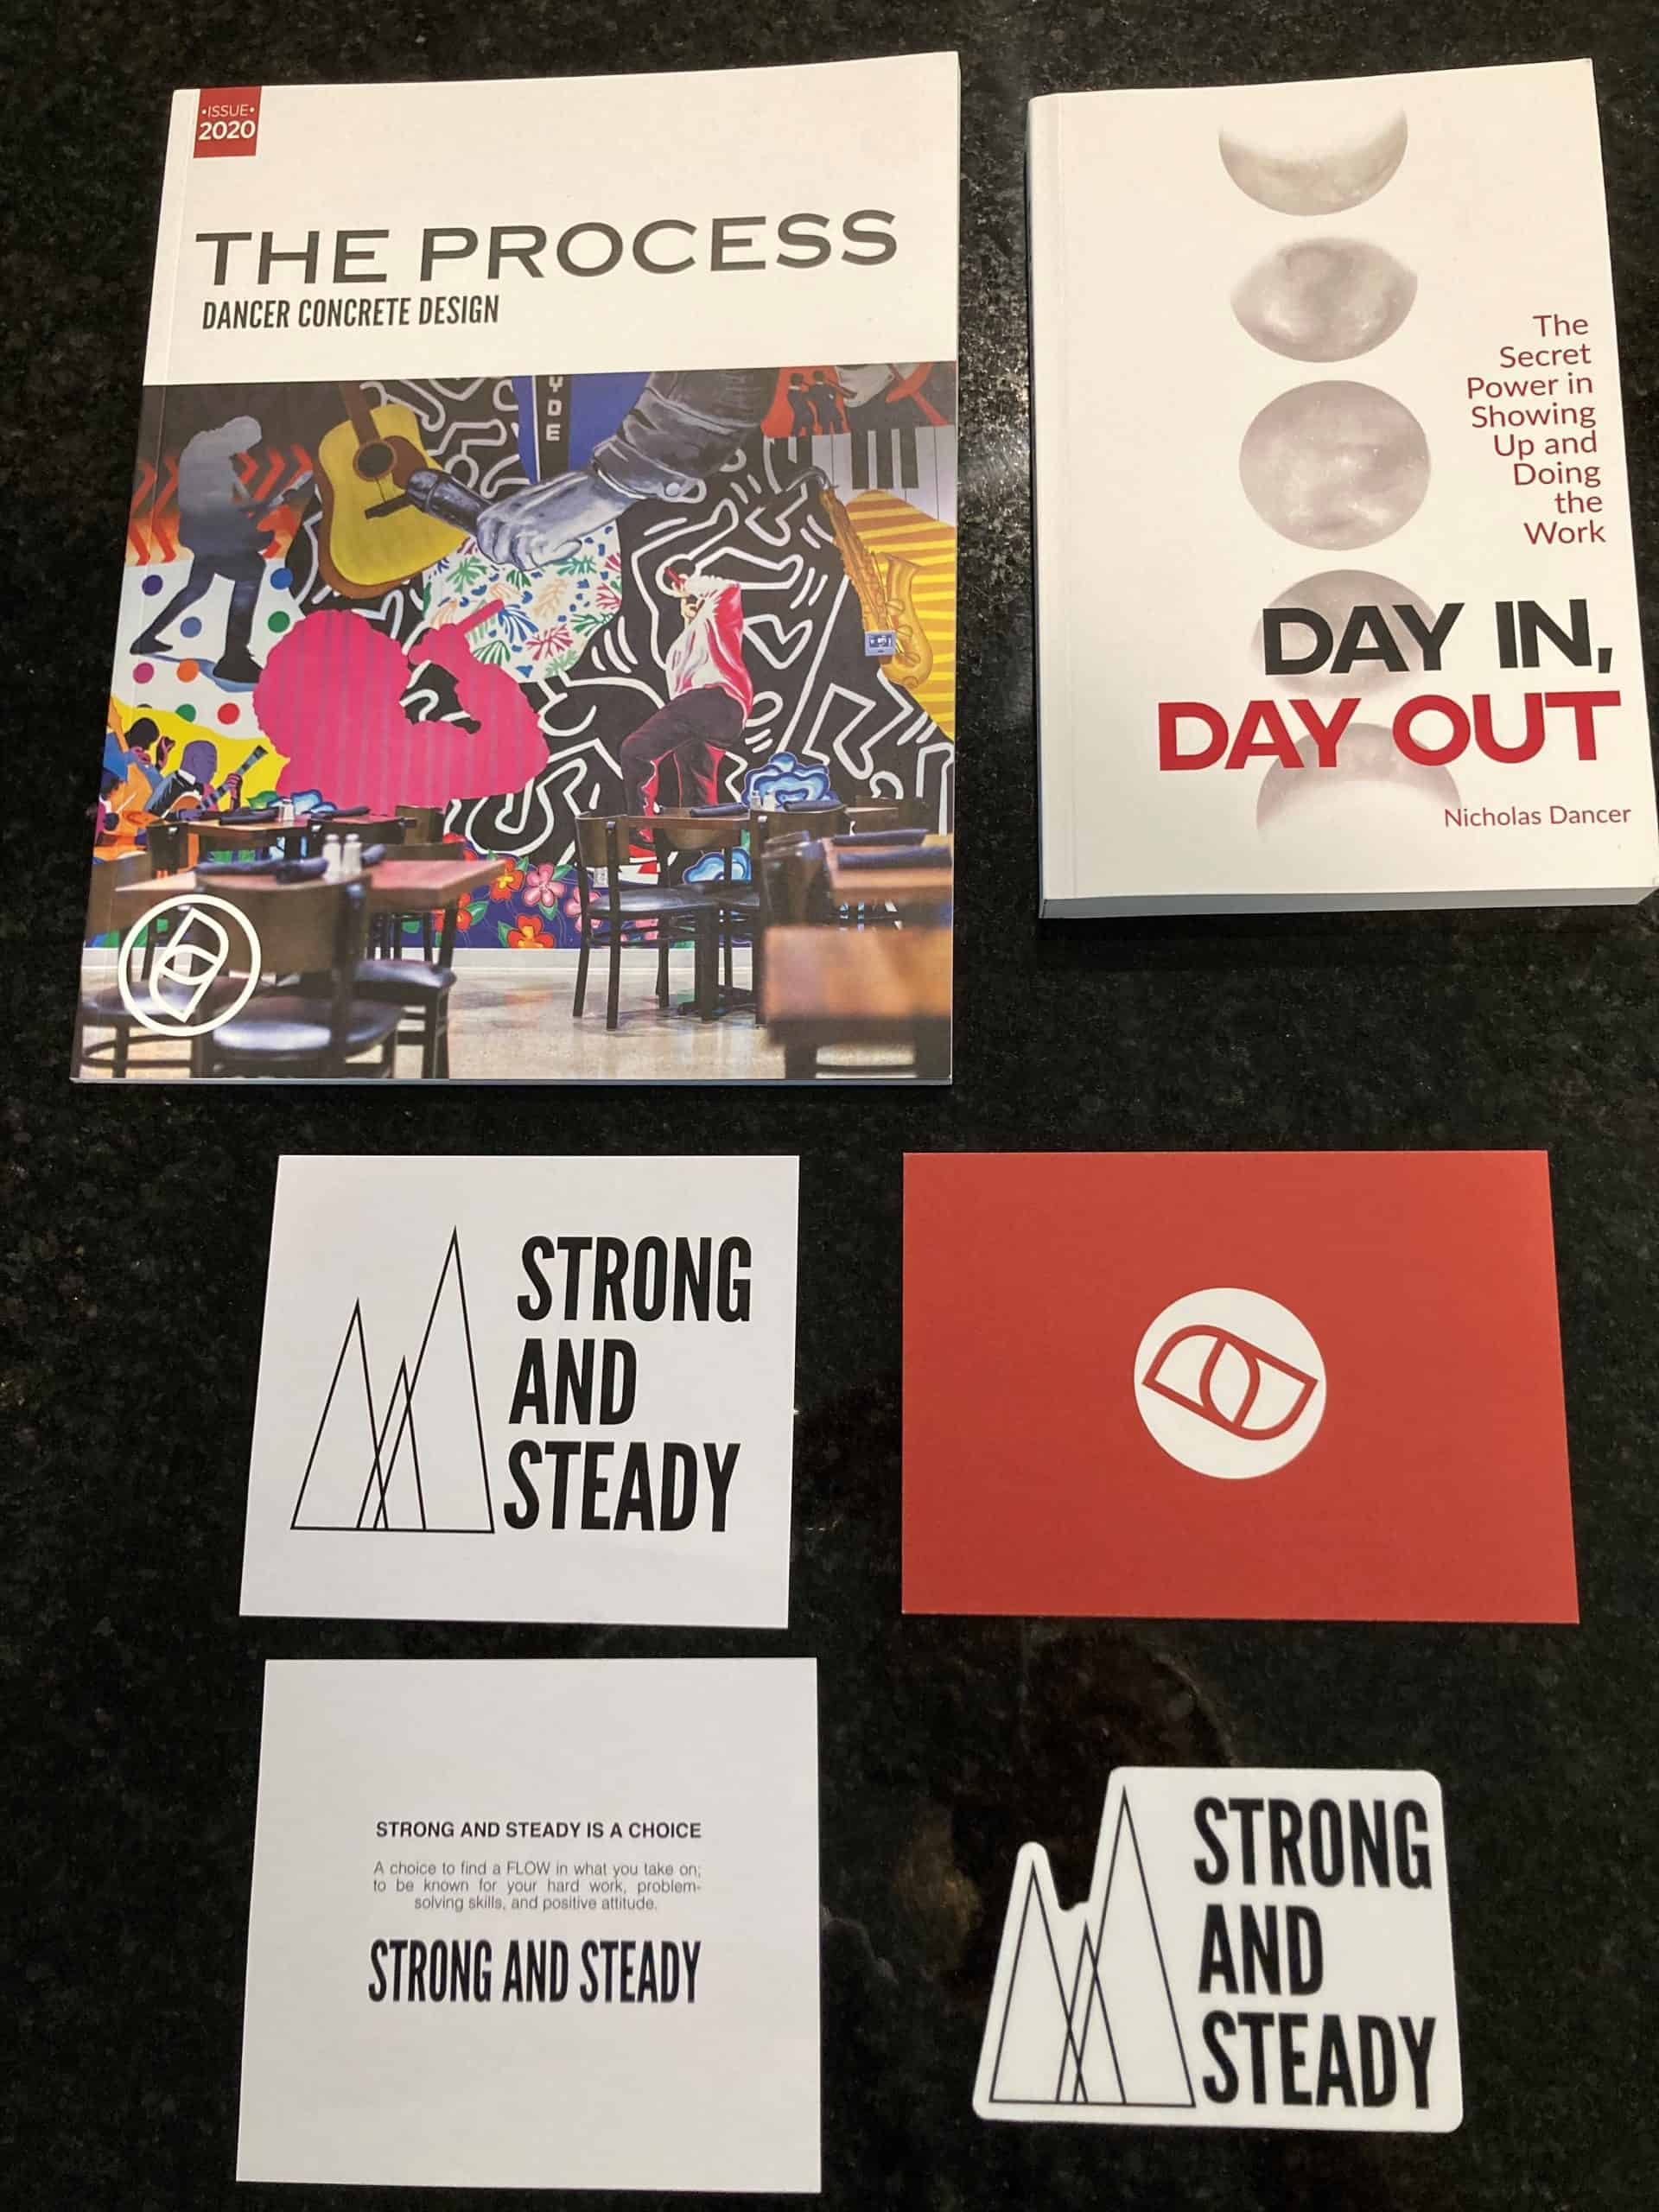 Pictured are some of Dancer Concrete's marketing materials and Dancer's own book published in 2019.